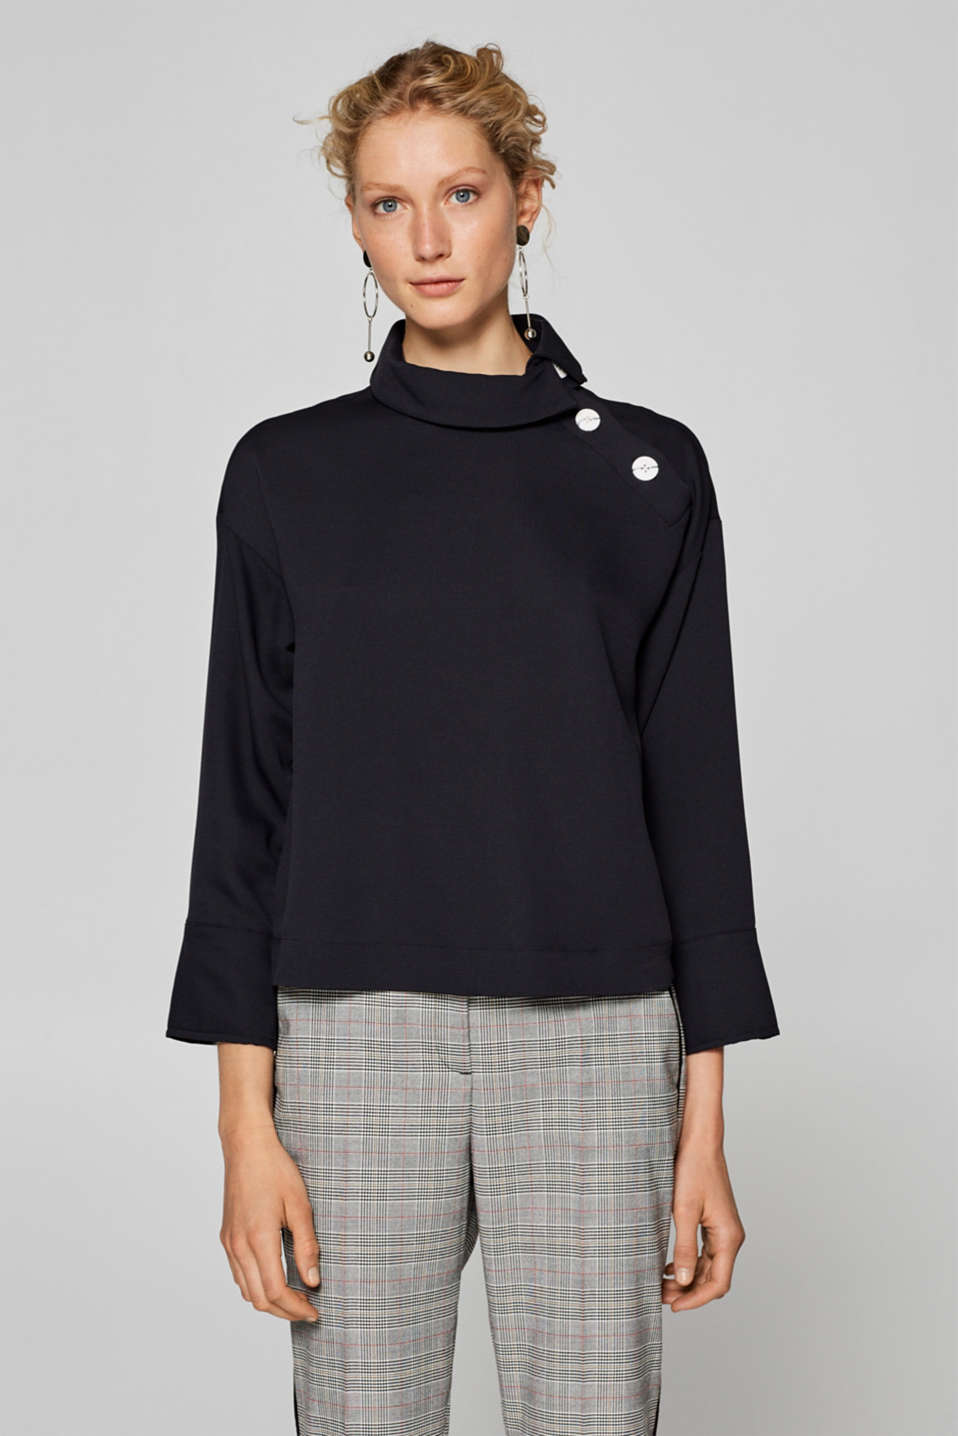 Esprit - Boxy blouse with a new lapel design